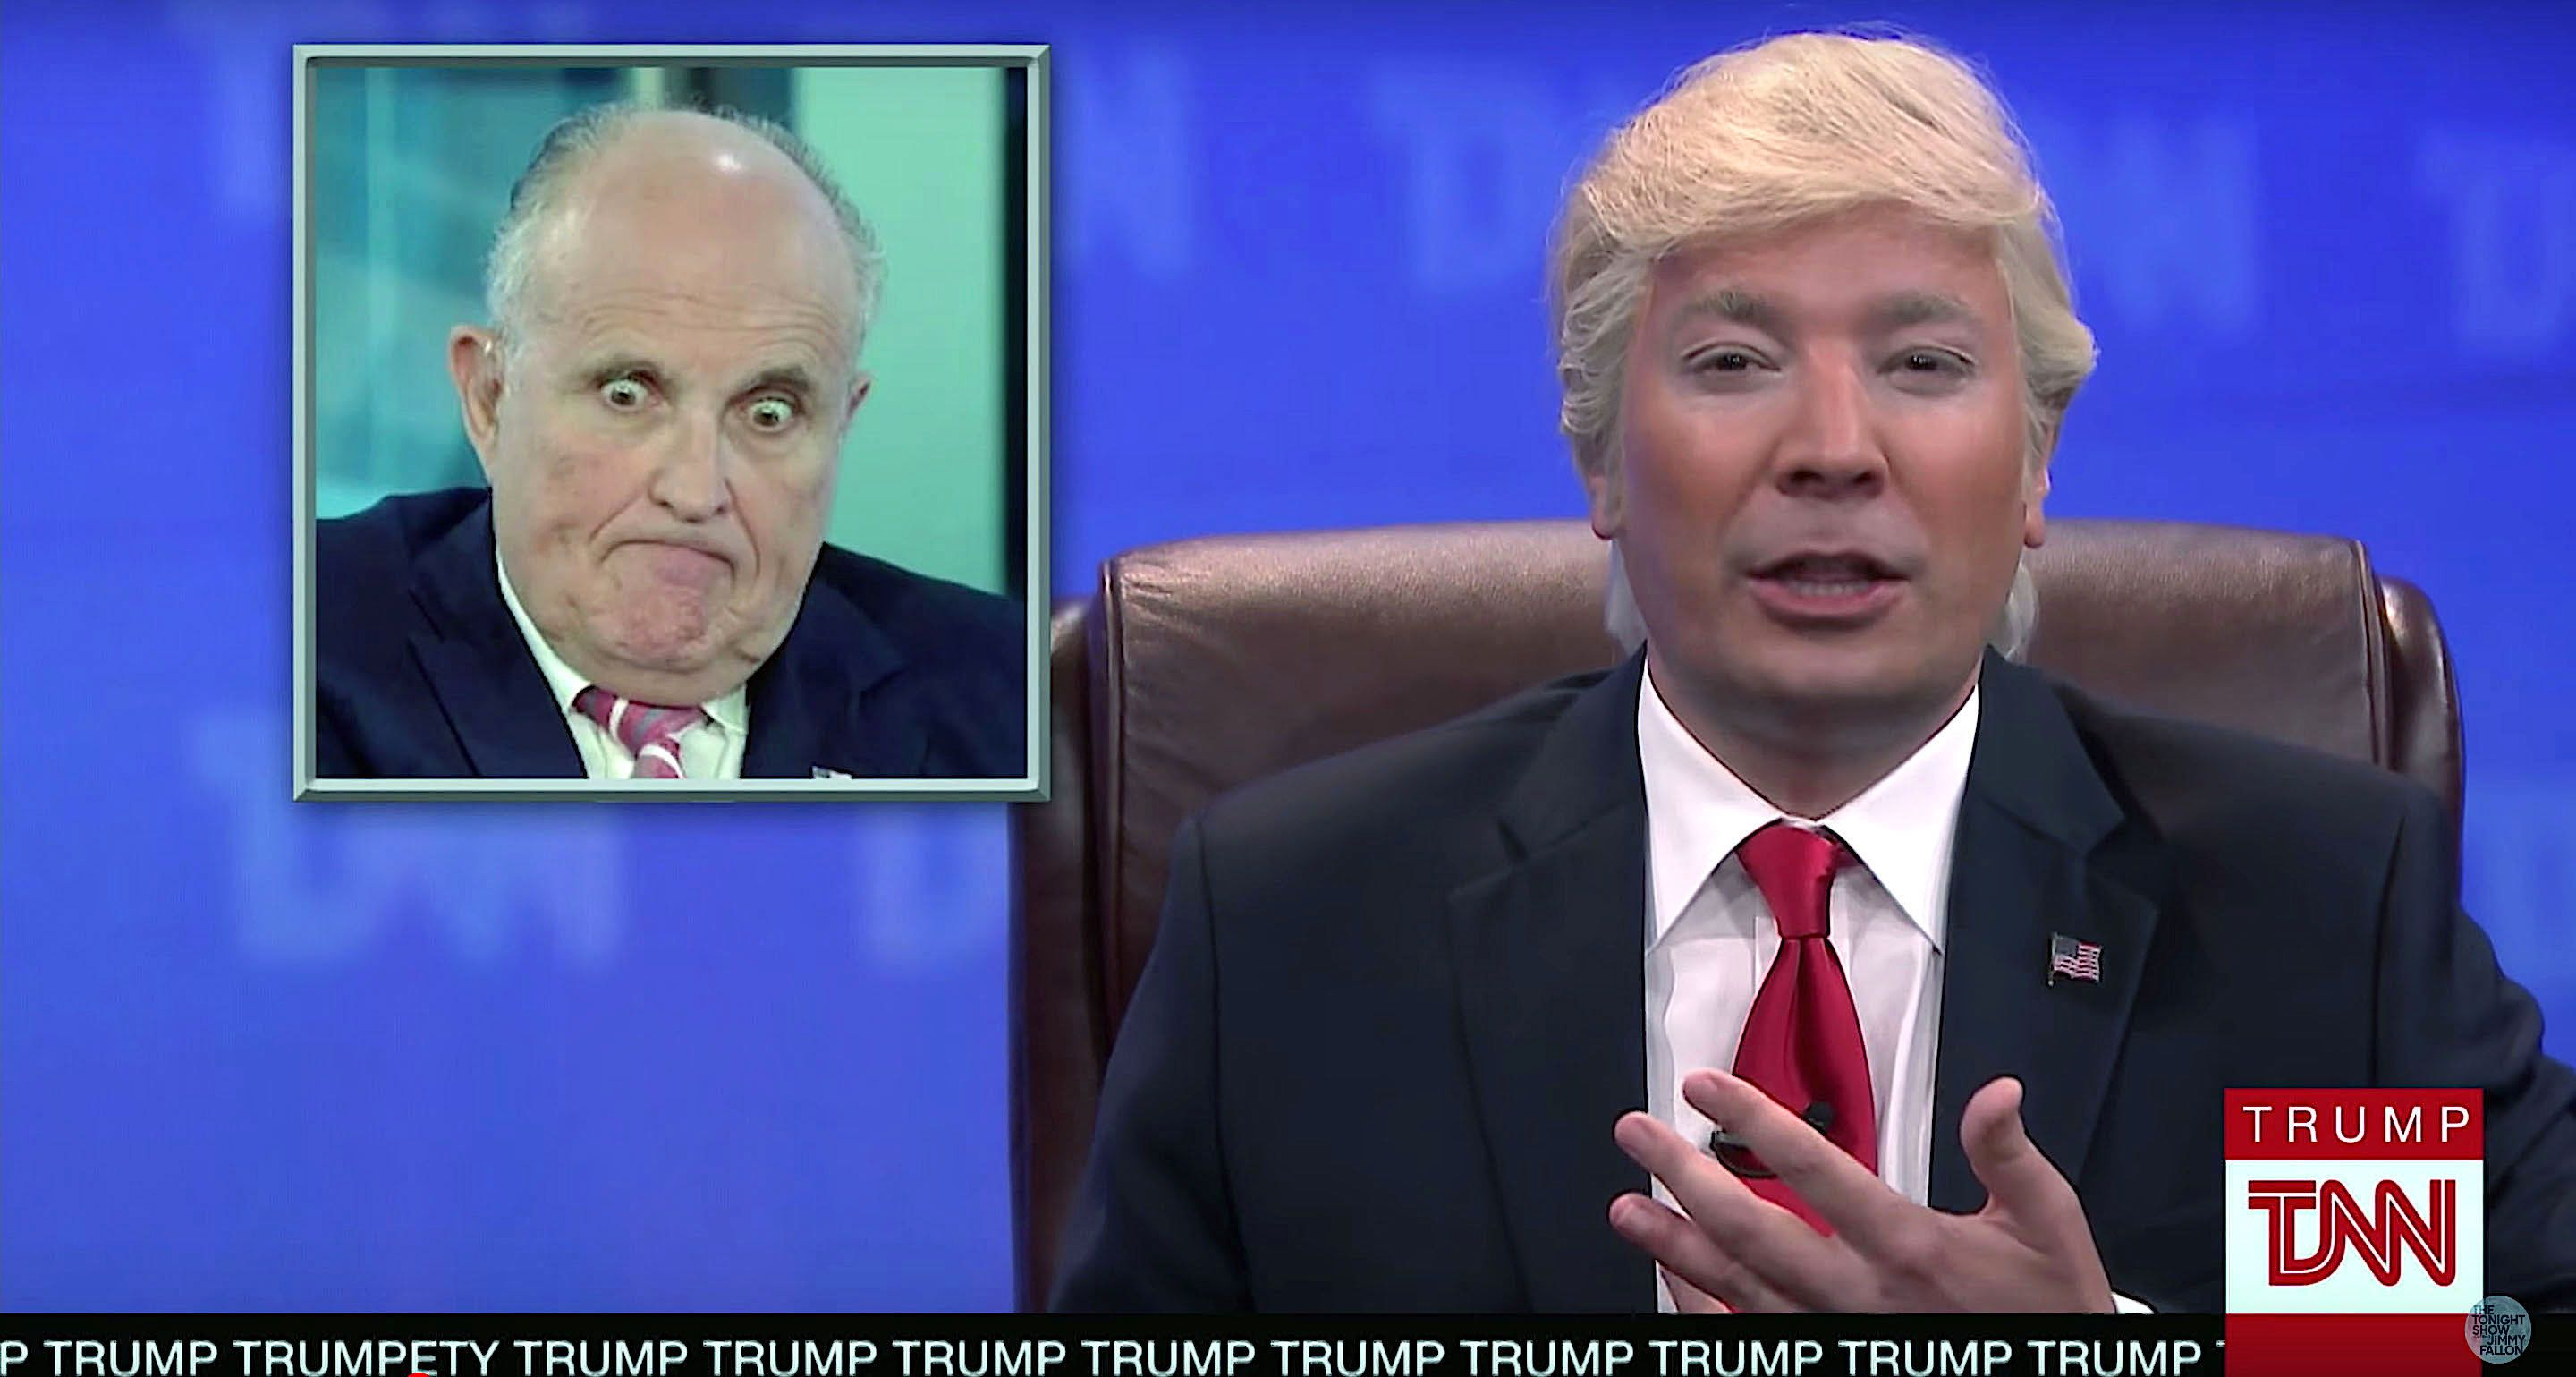 Jimmy Fallon Uncovers The Meaning Of Rudy Giuliani's Mystery